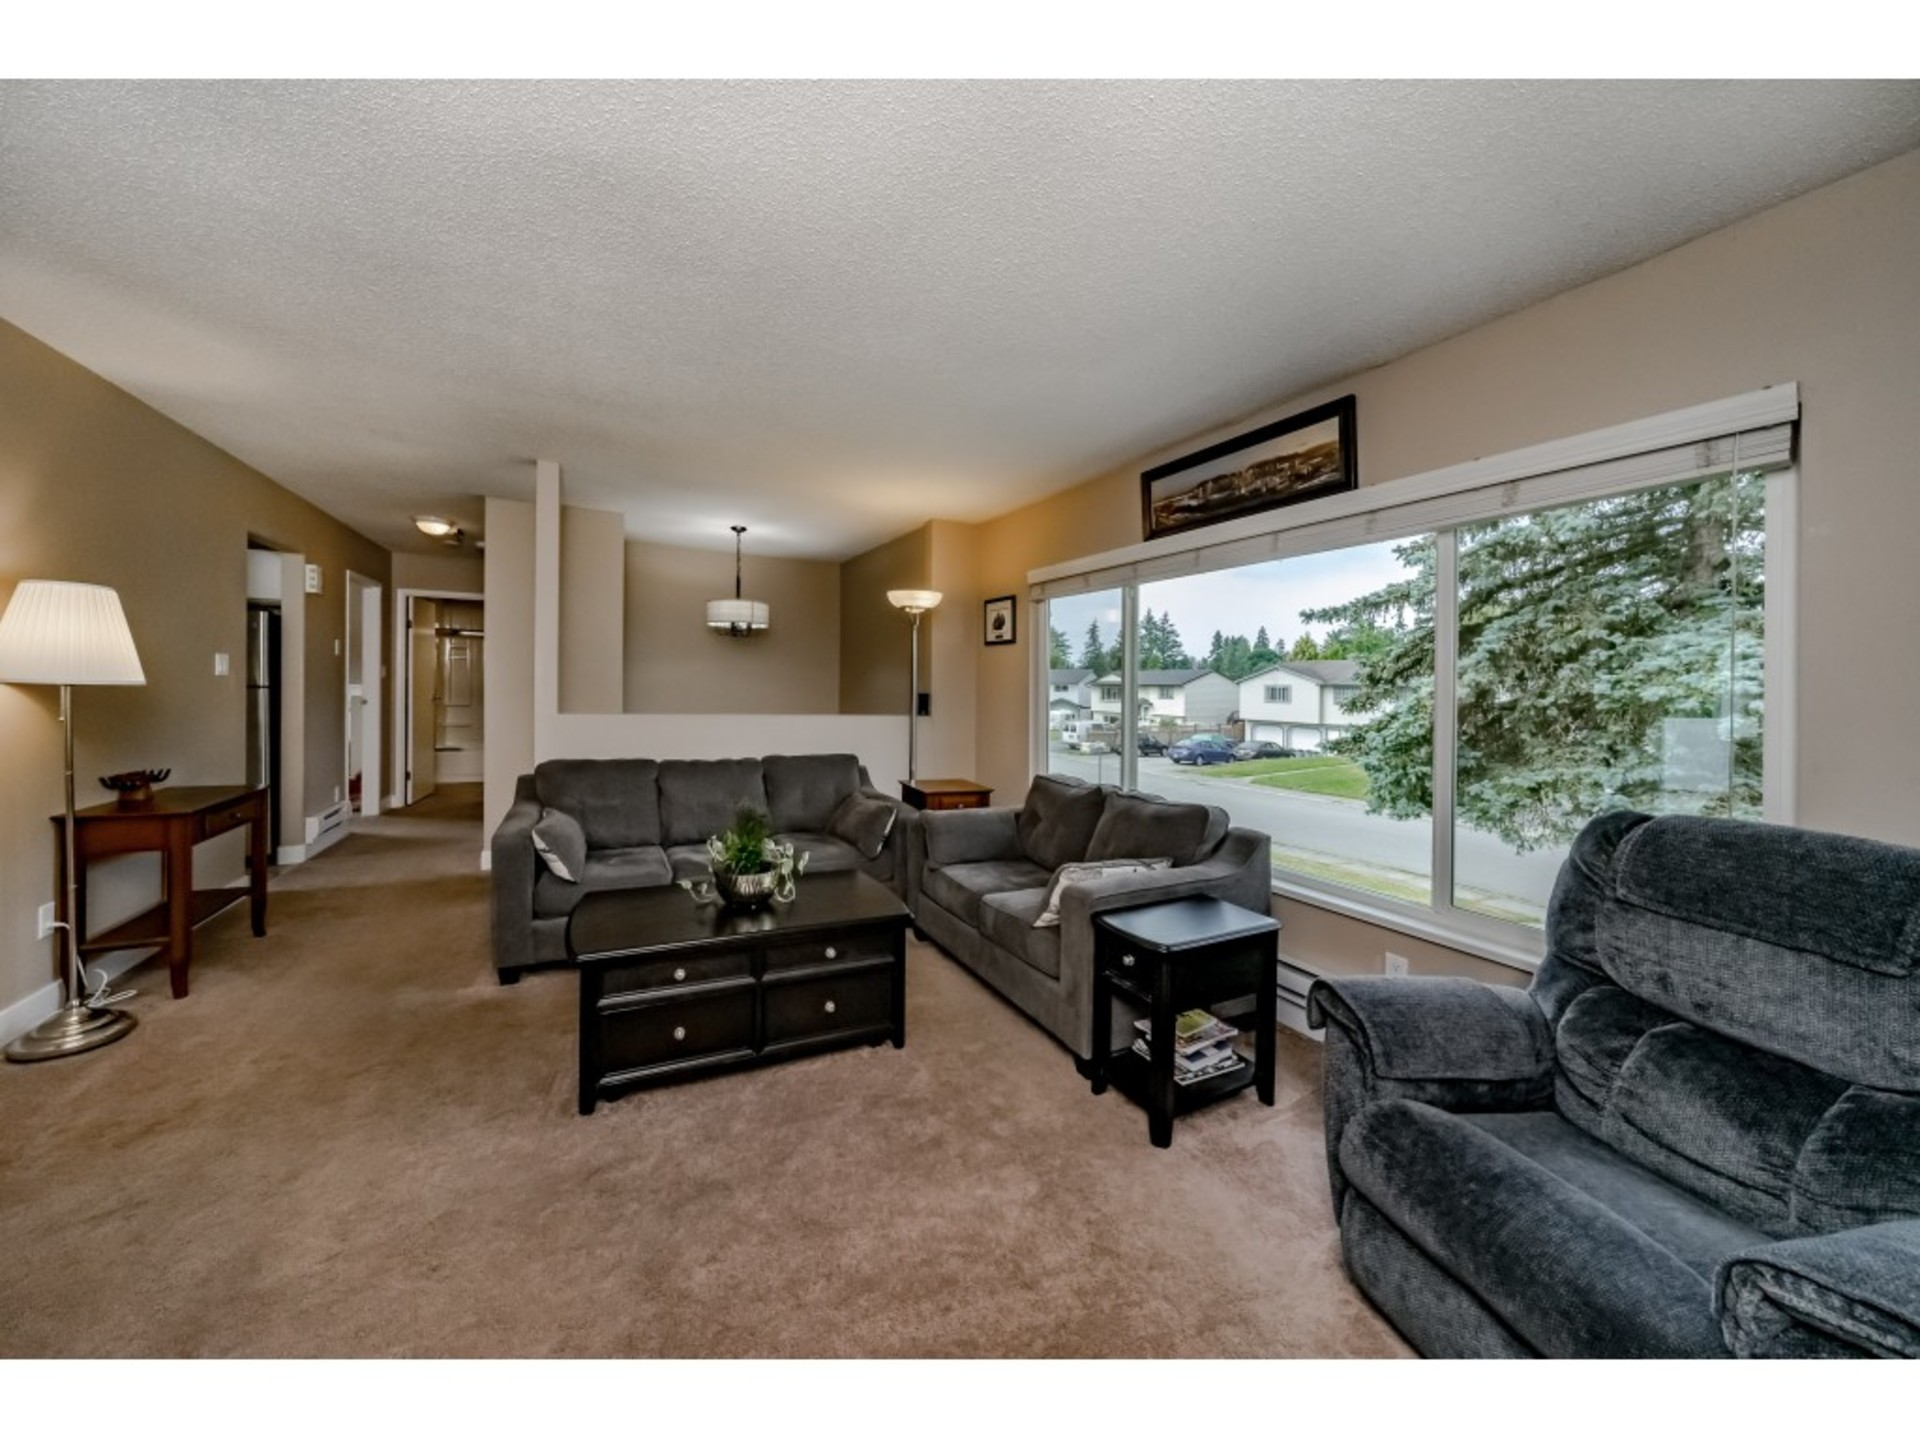 42458_7_mls at 12056 - 211 Street, Northwest Maple Ridge, Maple Ridge